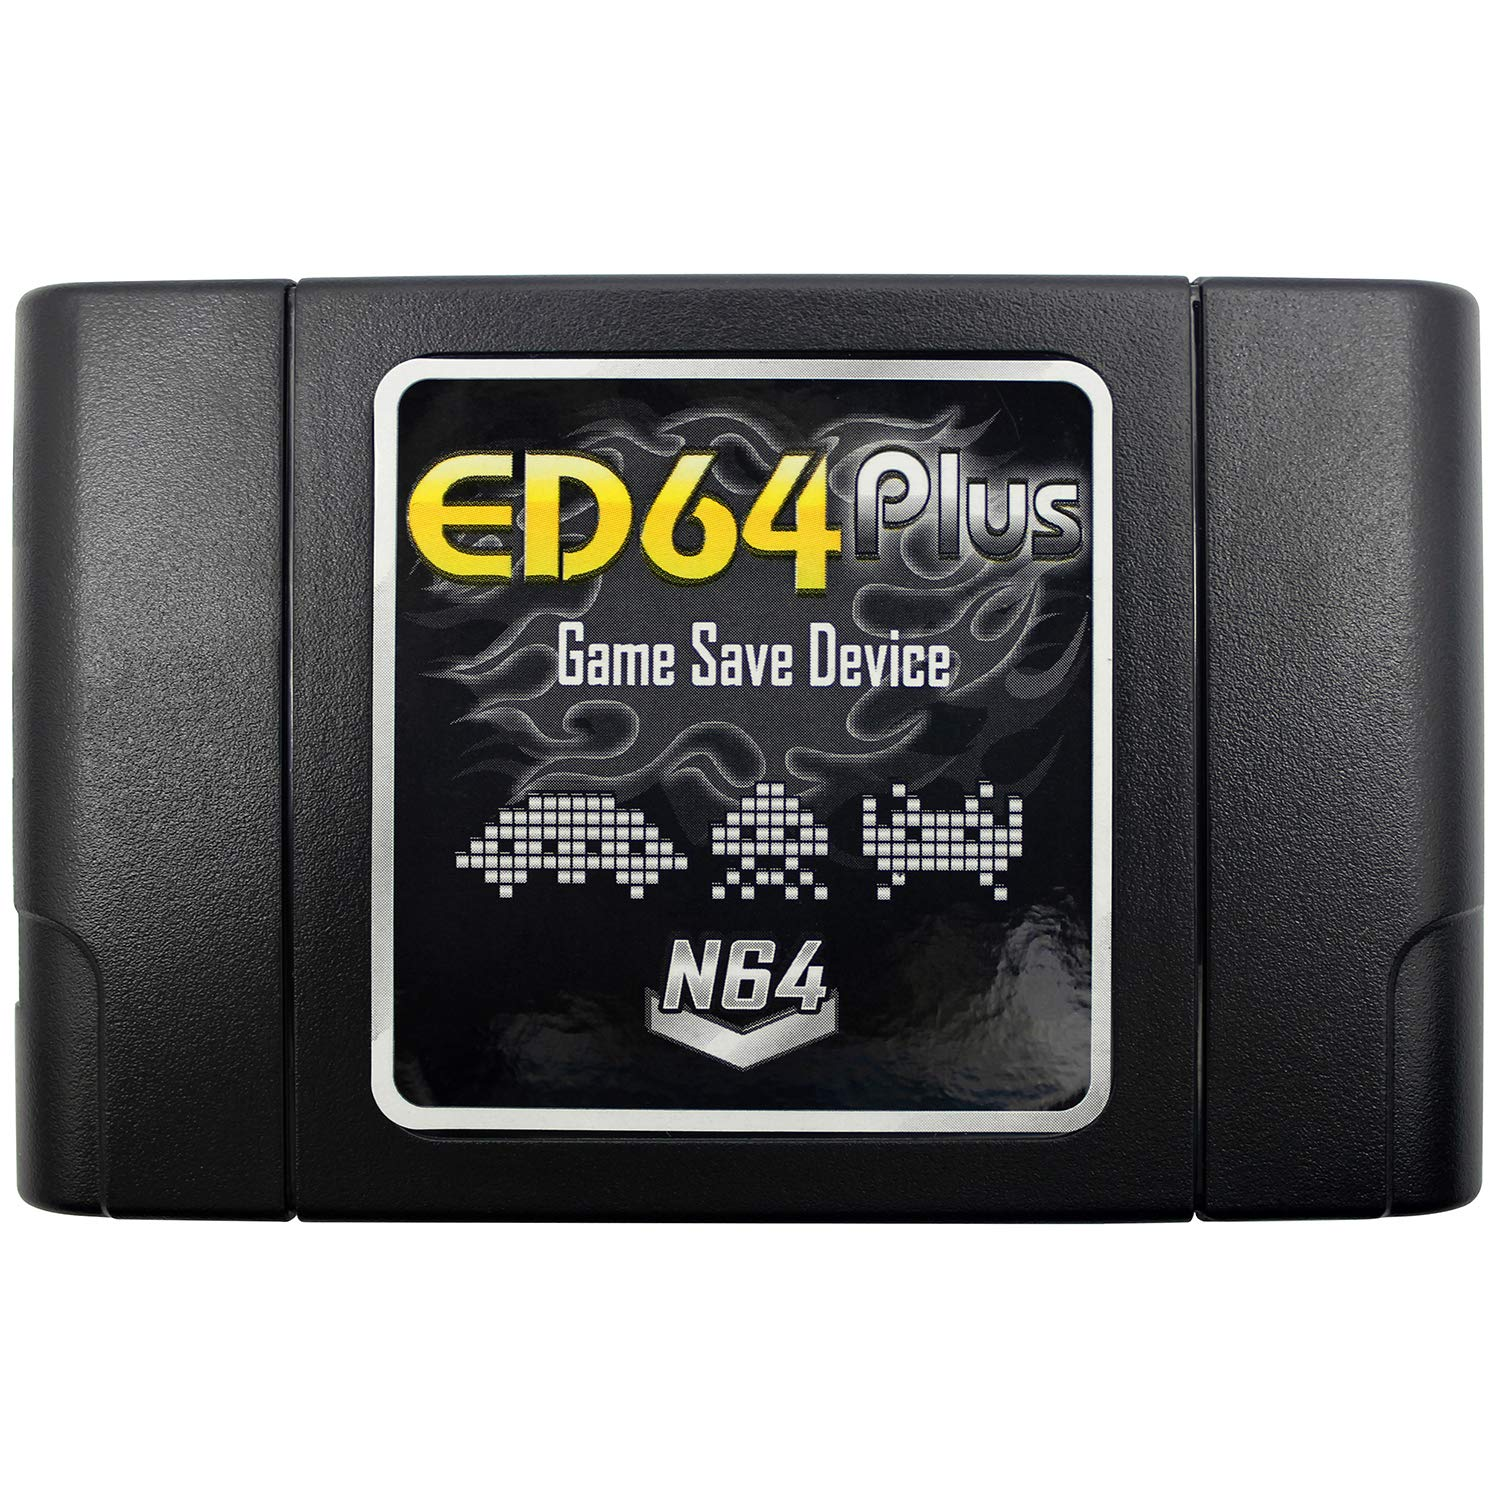 OSTENT PAL/NTSC ED64 Plus Game Save Device Cartridge 8GB SD Card Adapter Compatible for Nintendo N64 Games